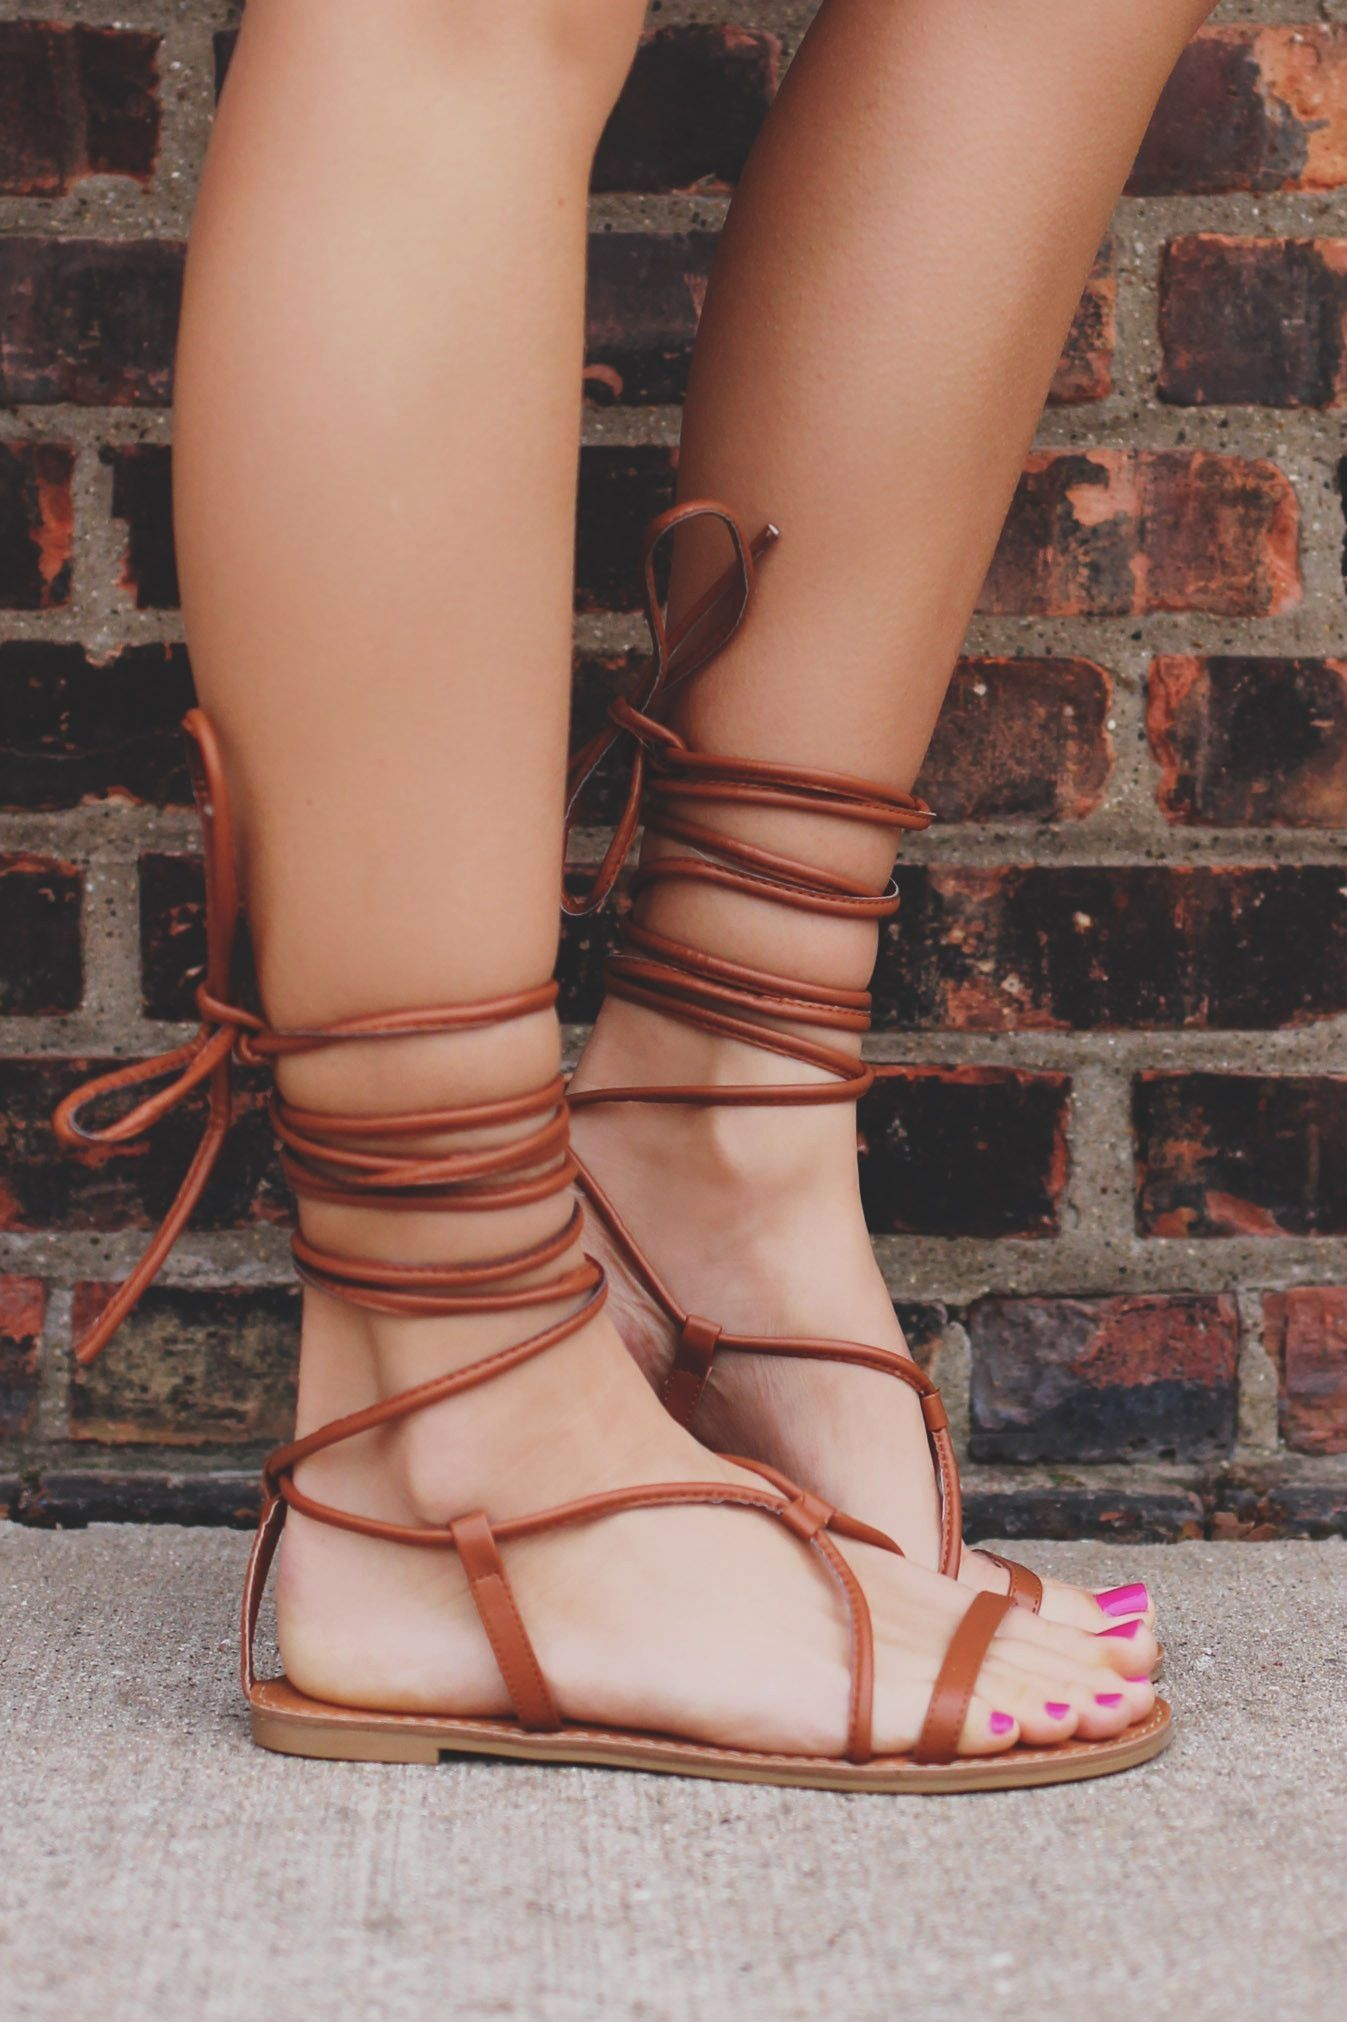 598cb9eff3c Camel Sandals, Leather Gladiator Sandals, Wrap Shoes, Huaraches, Flats, Shoes  Sandals